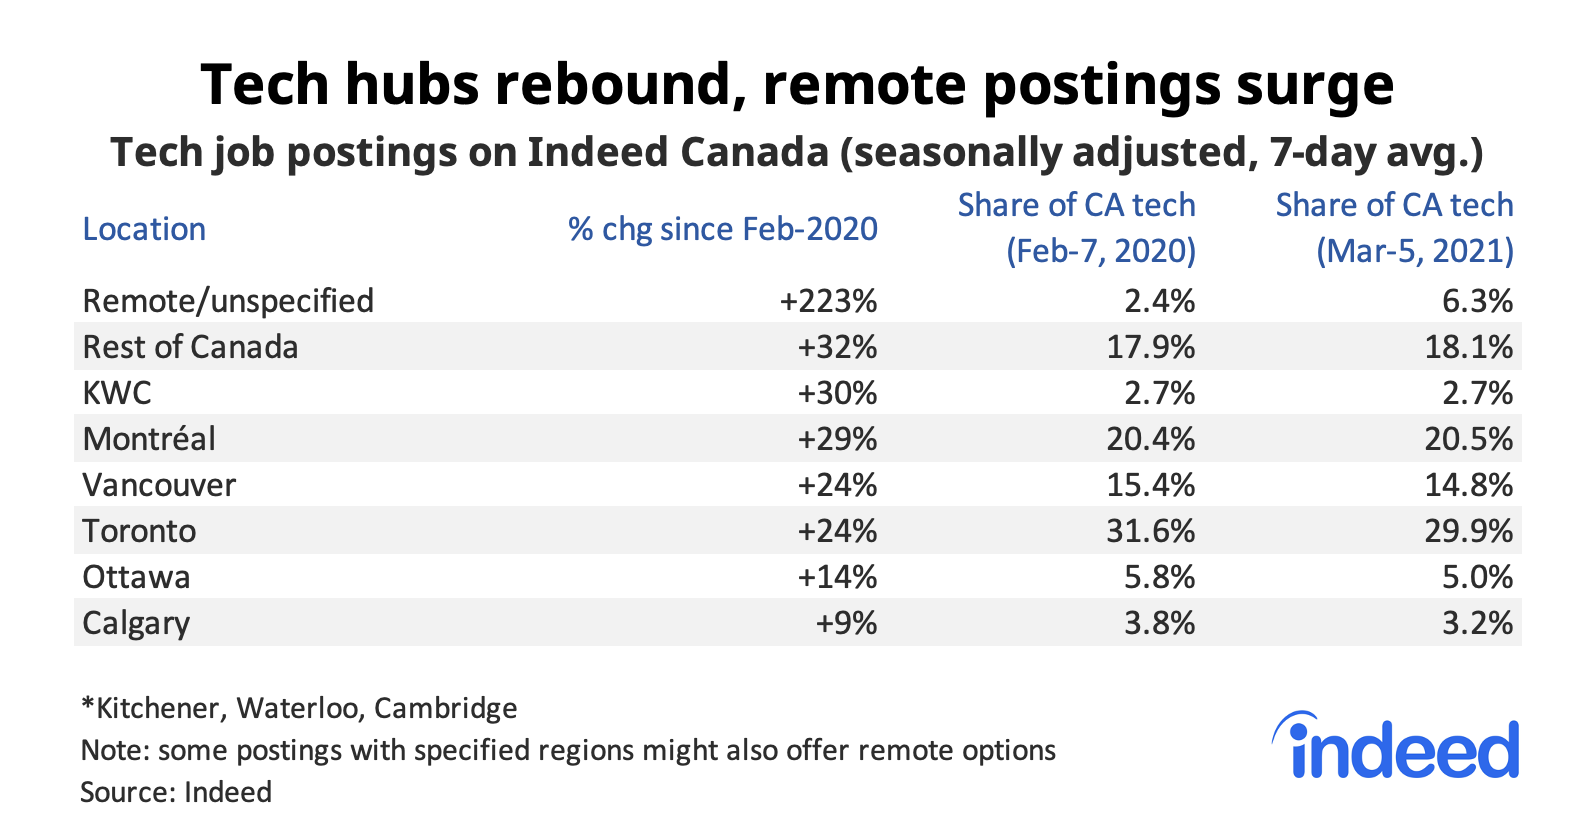 Table showing tech hubs have rebounded, remote postings surge